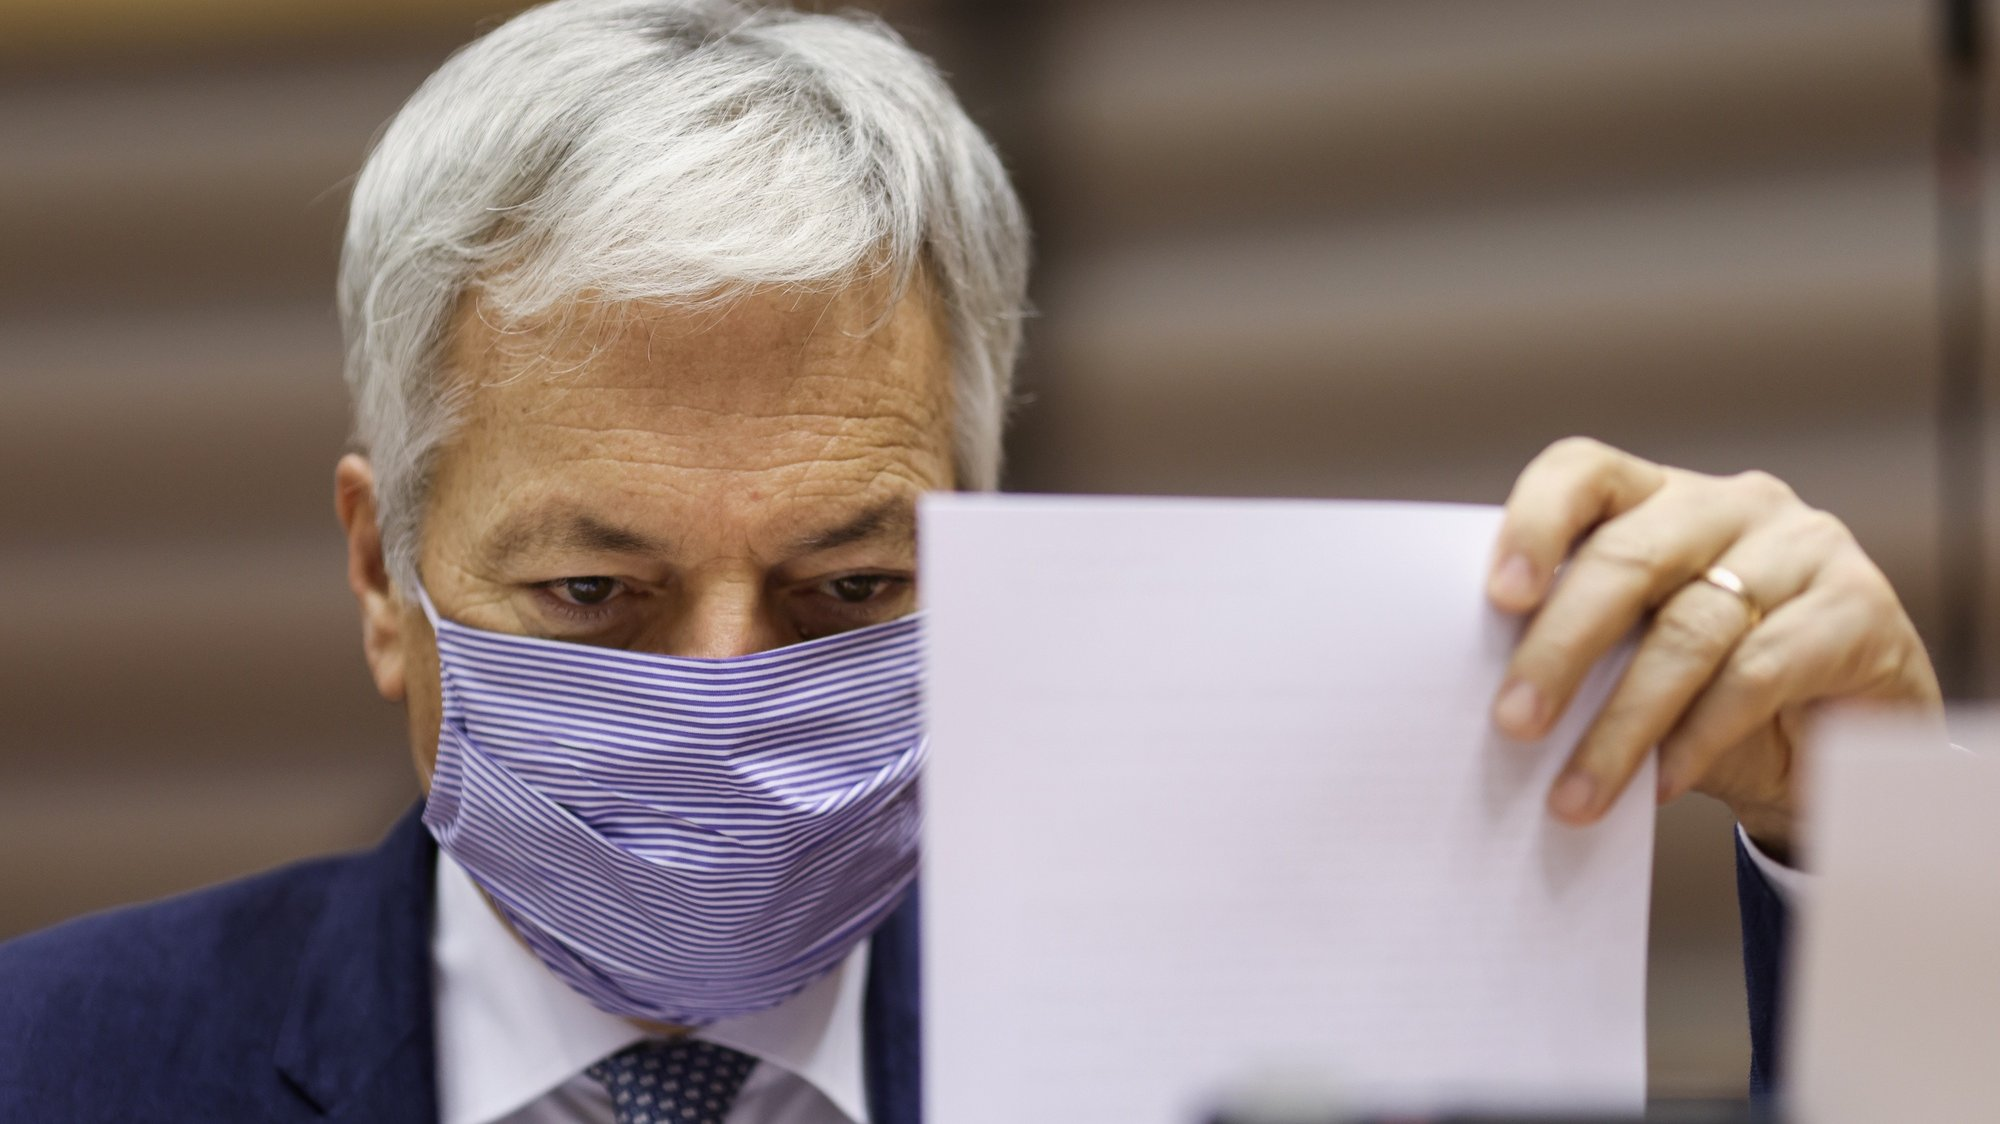 epa08837745 European Commissioner for Justice Didier Reynders, wearing a face mask ,arrives for a plenary session of the European Parliament, Belgium, 23 November 2020.  EPA/KENZO TRIBOUILLARD / POOL